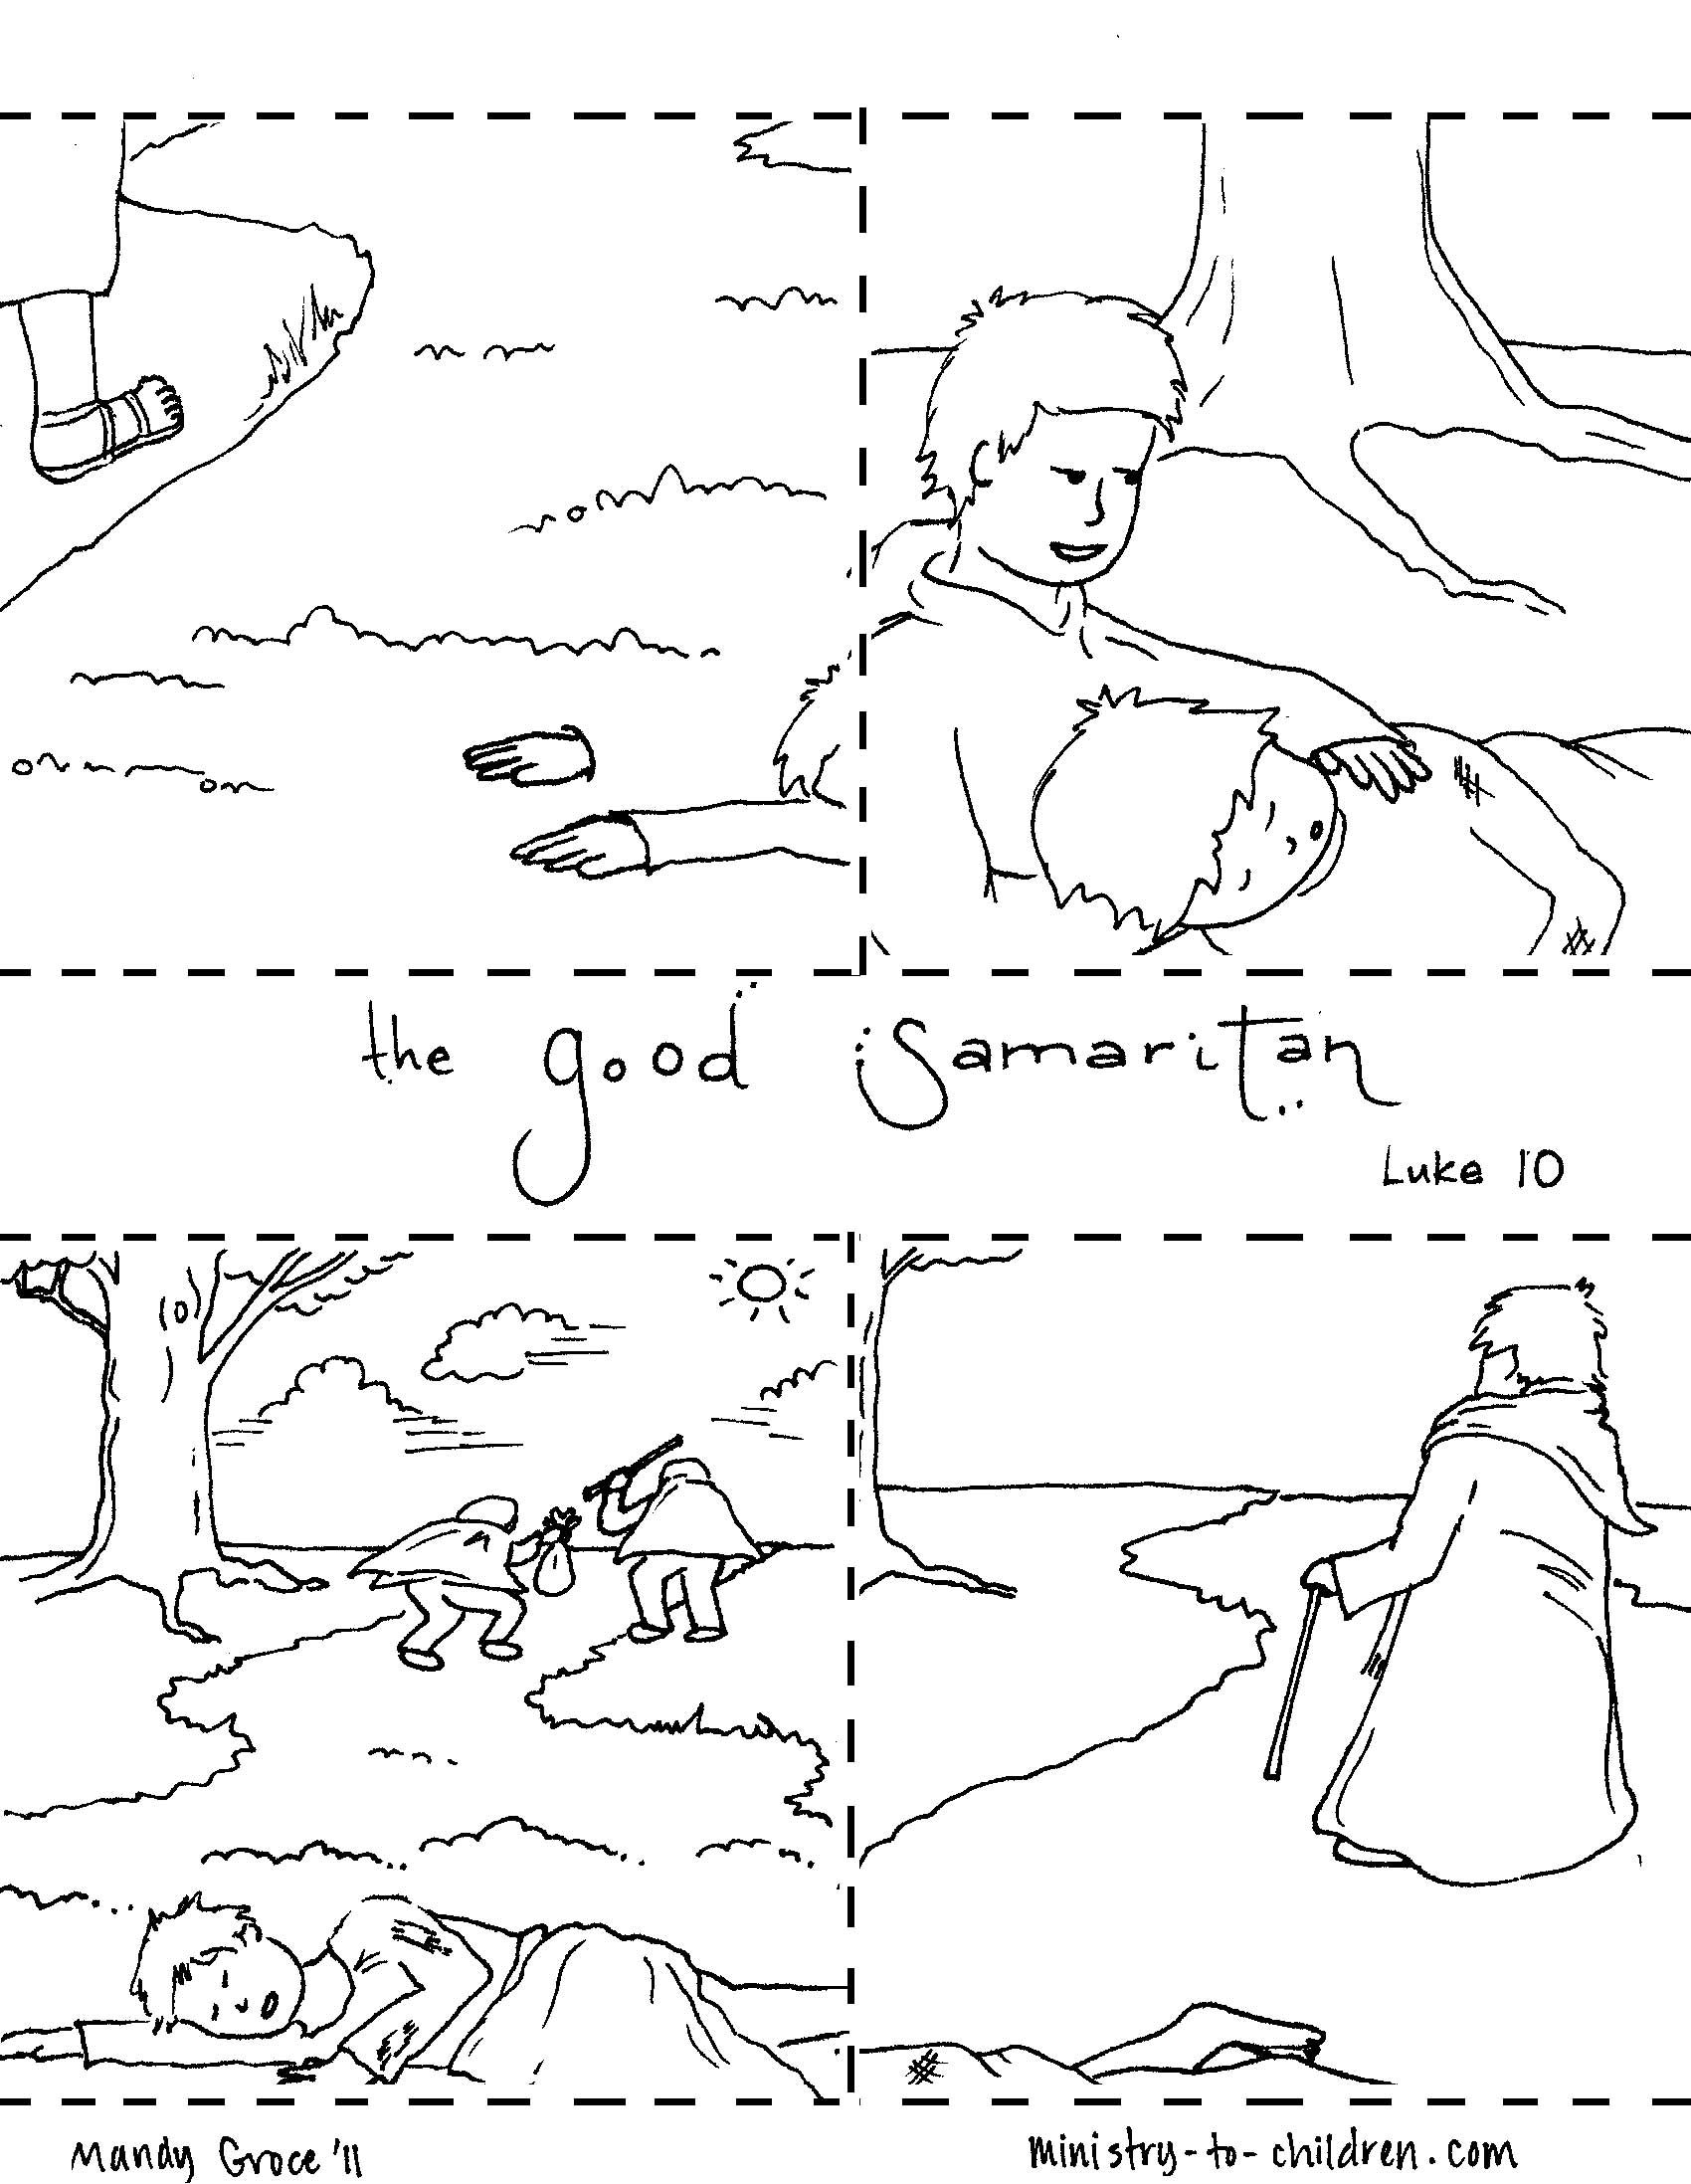 The Good Samaritan Coloring Pages | crafts | Pinterest | Sunday ...